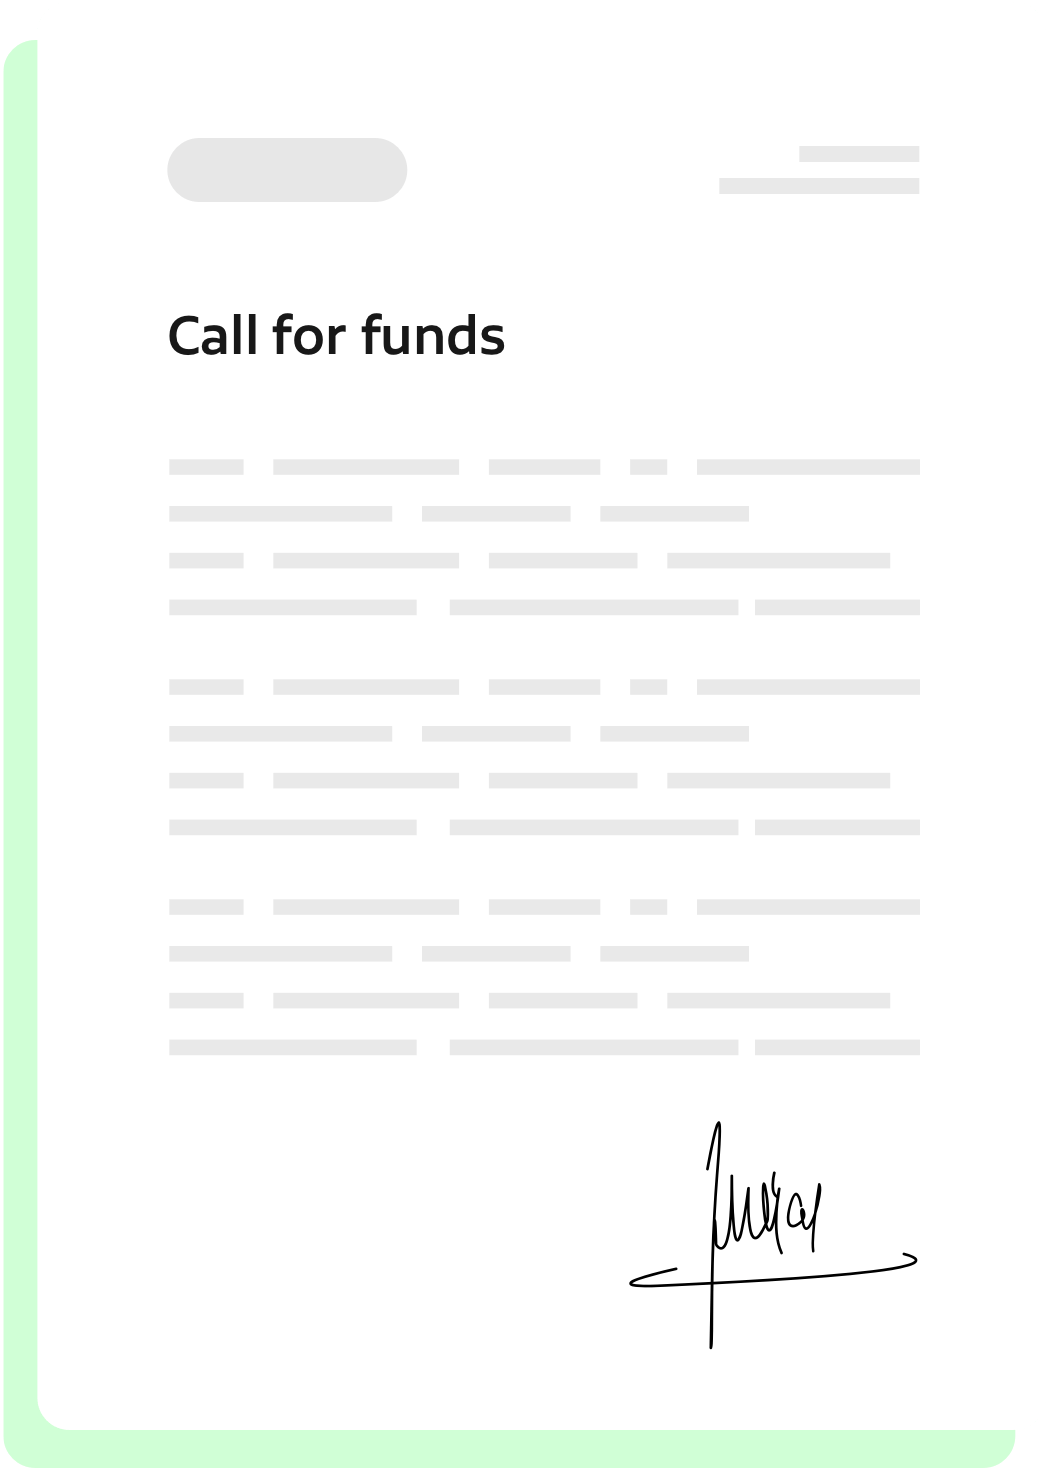 calls for funds